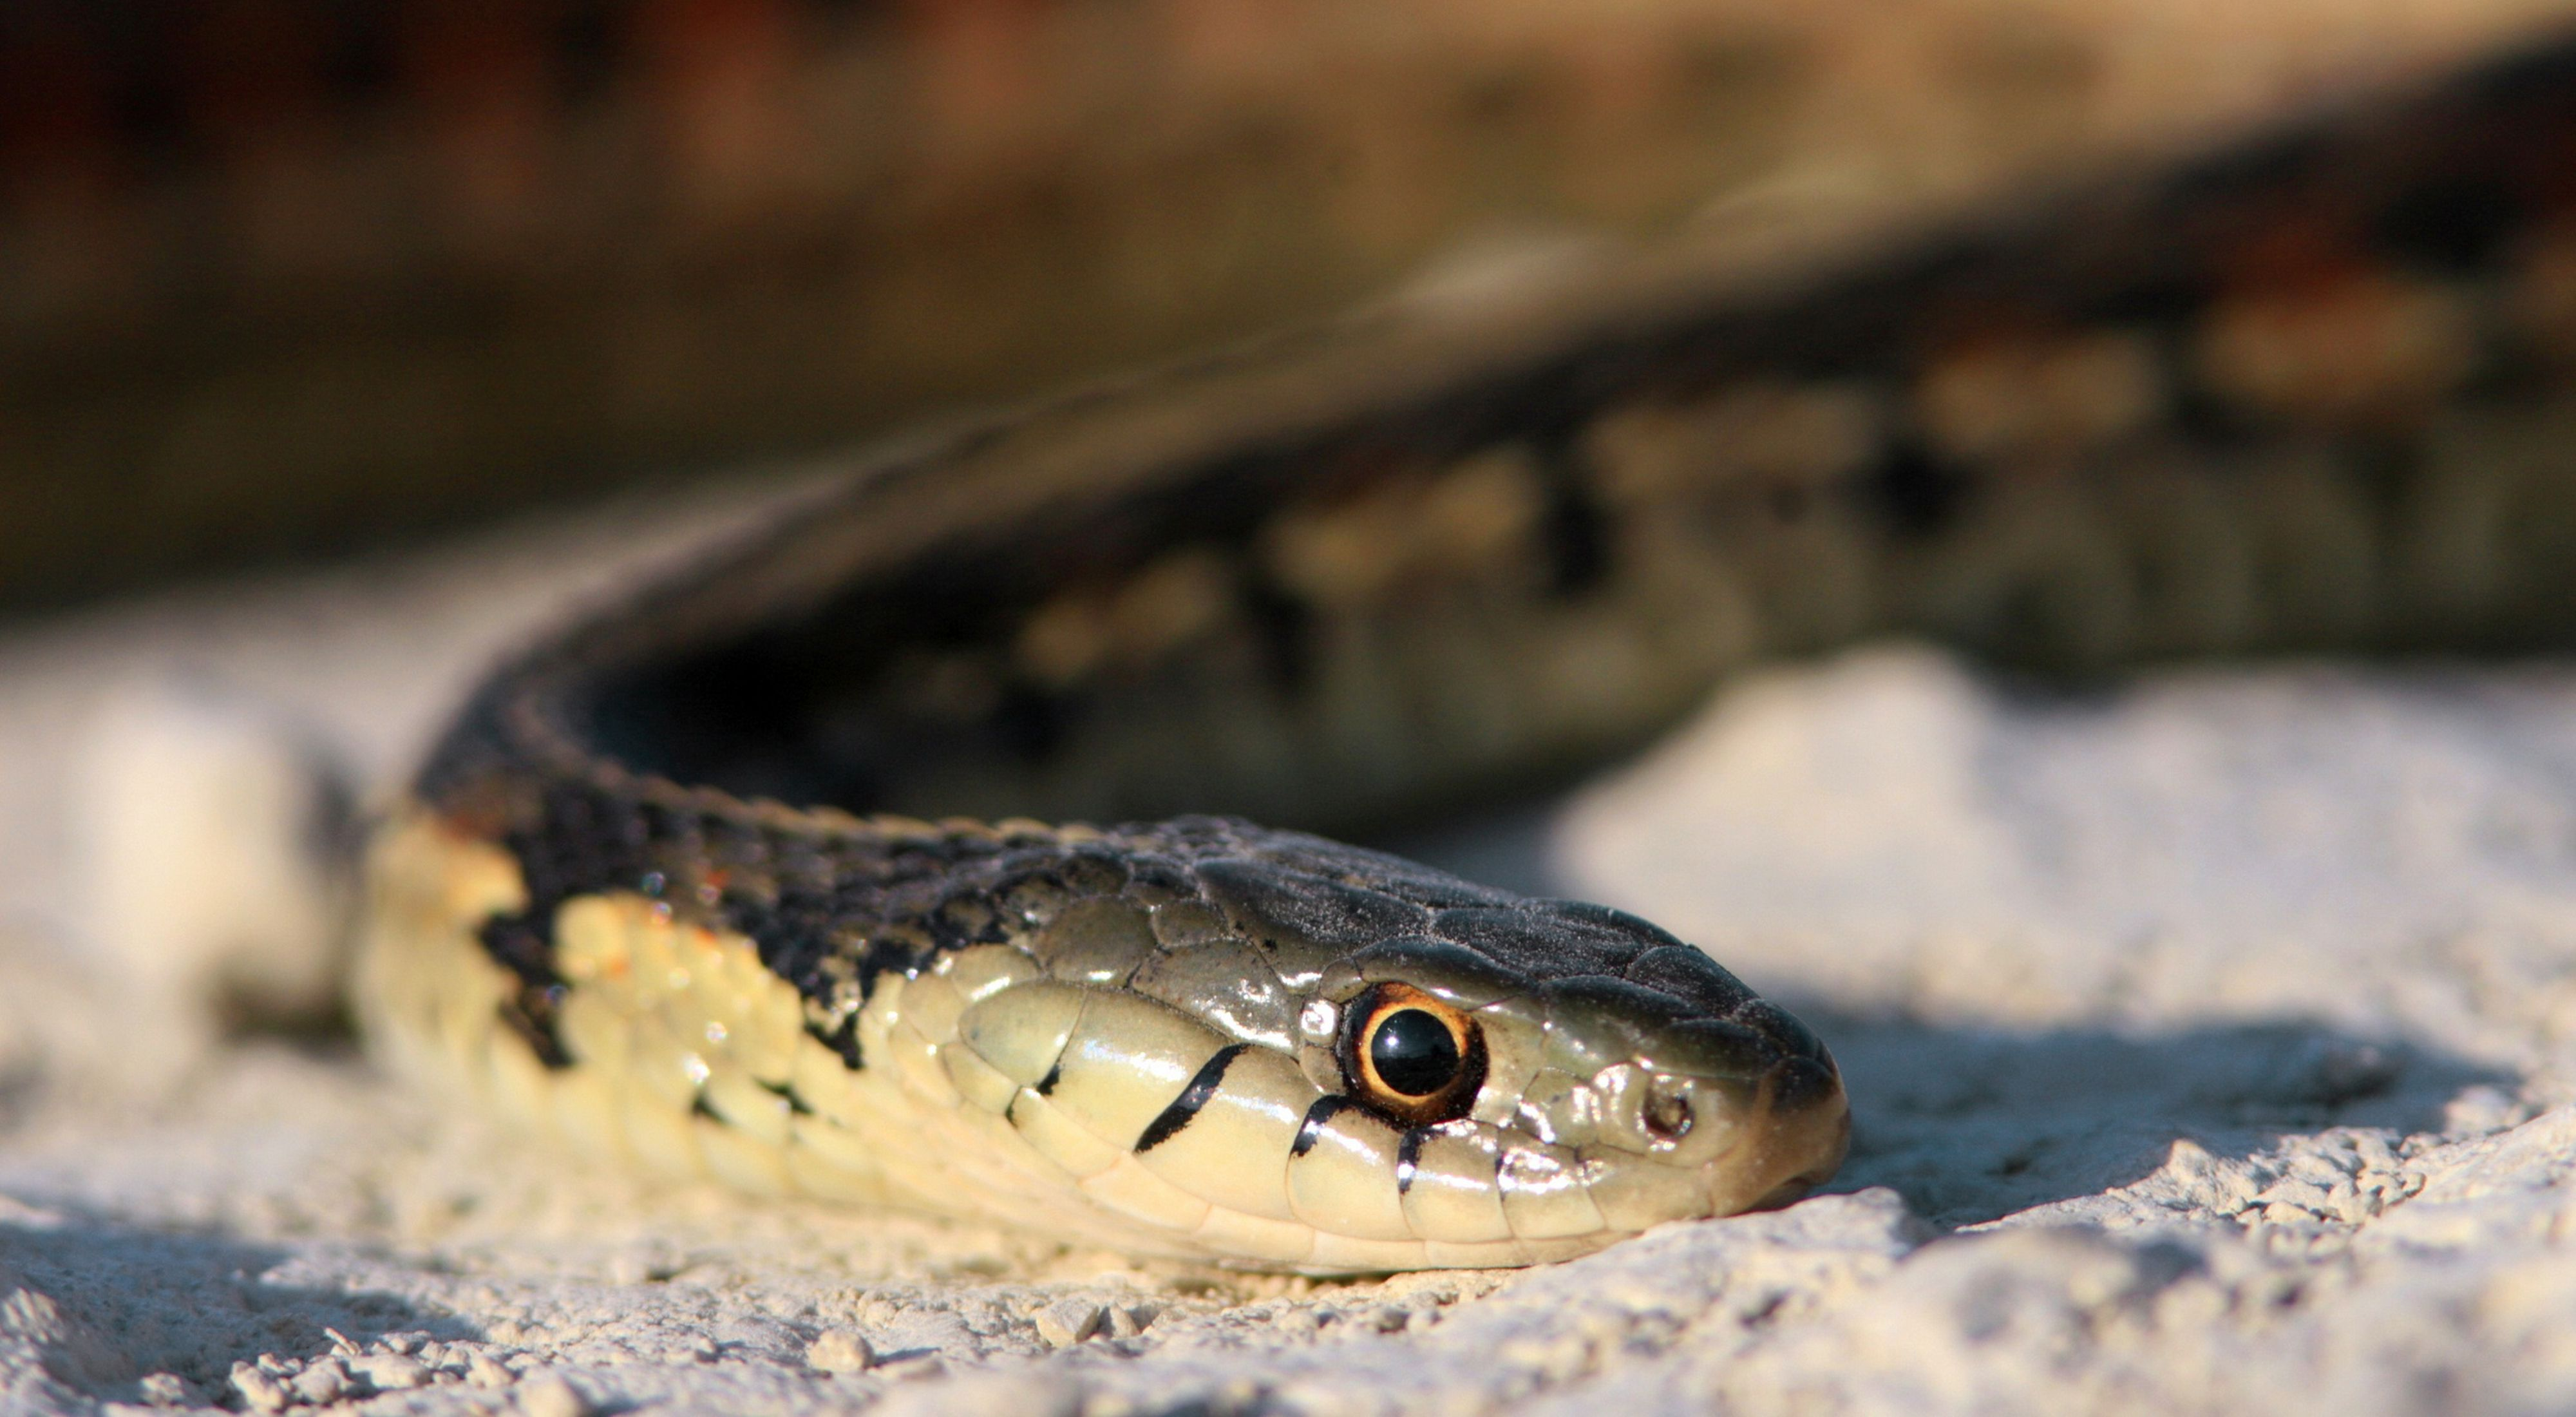 A close-up view of a garter snake, showing the head.